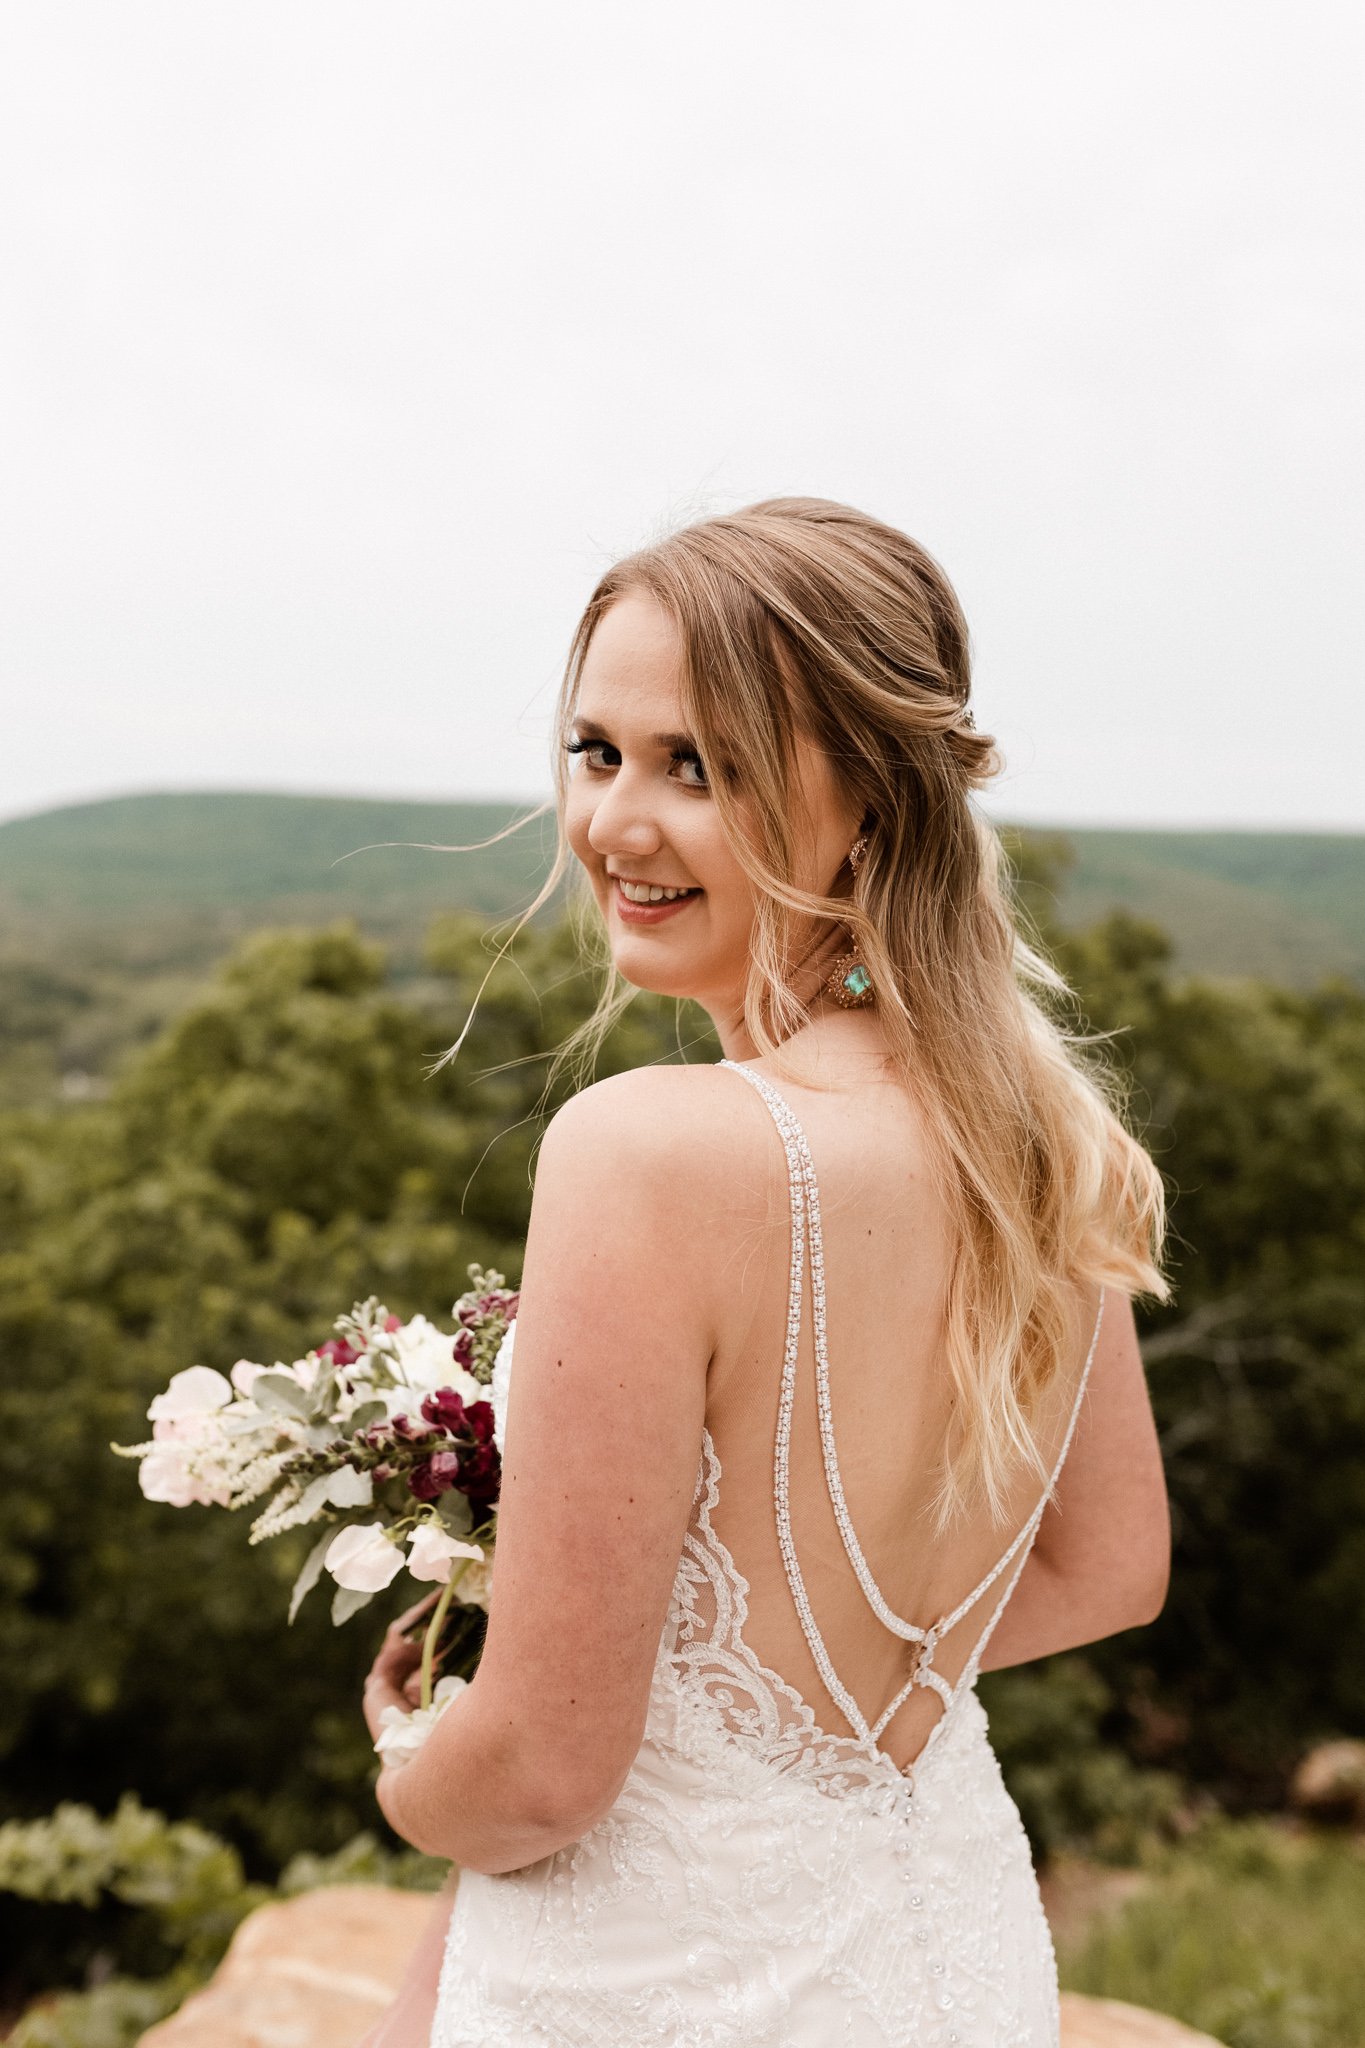 Brittany | Romantic Outdoor Bridals | Oklahoma Wedding Photographer-10.jpg